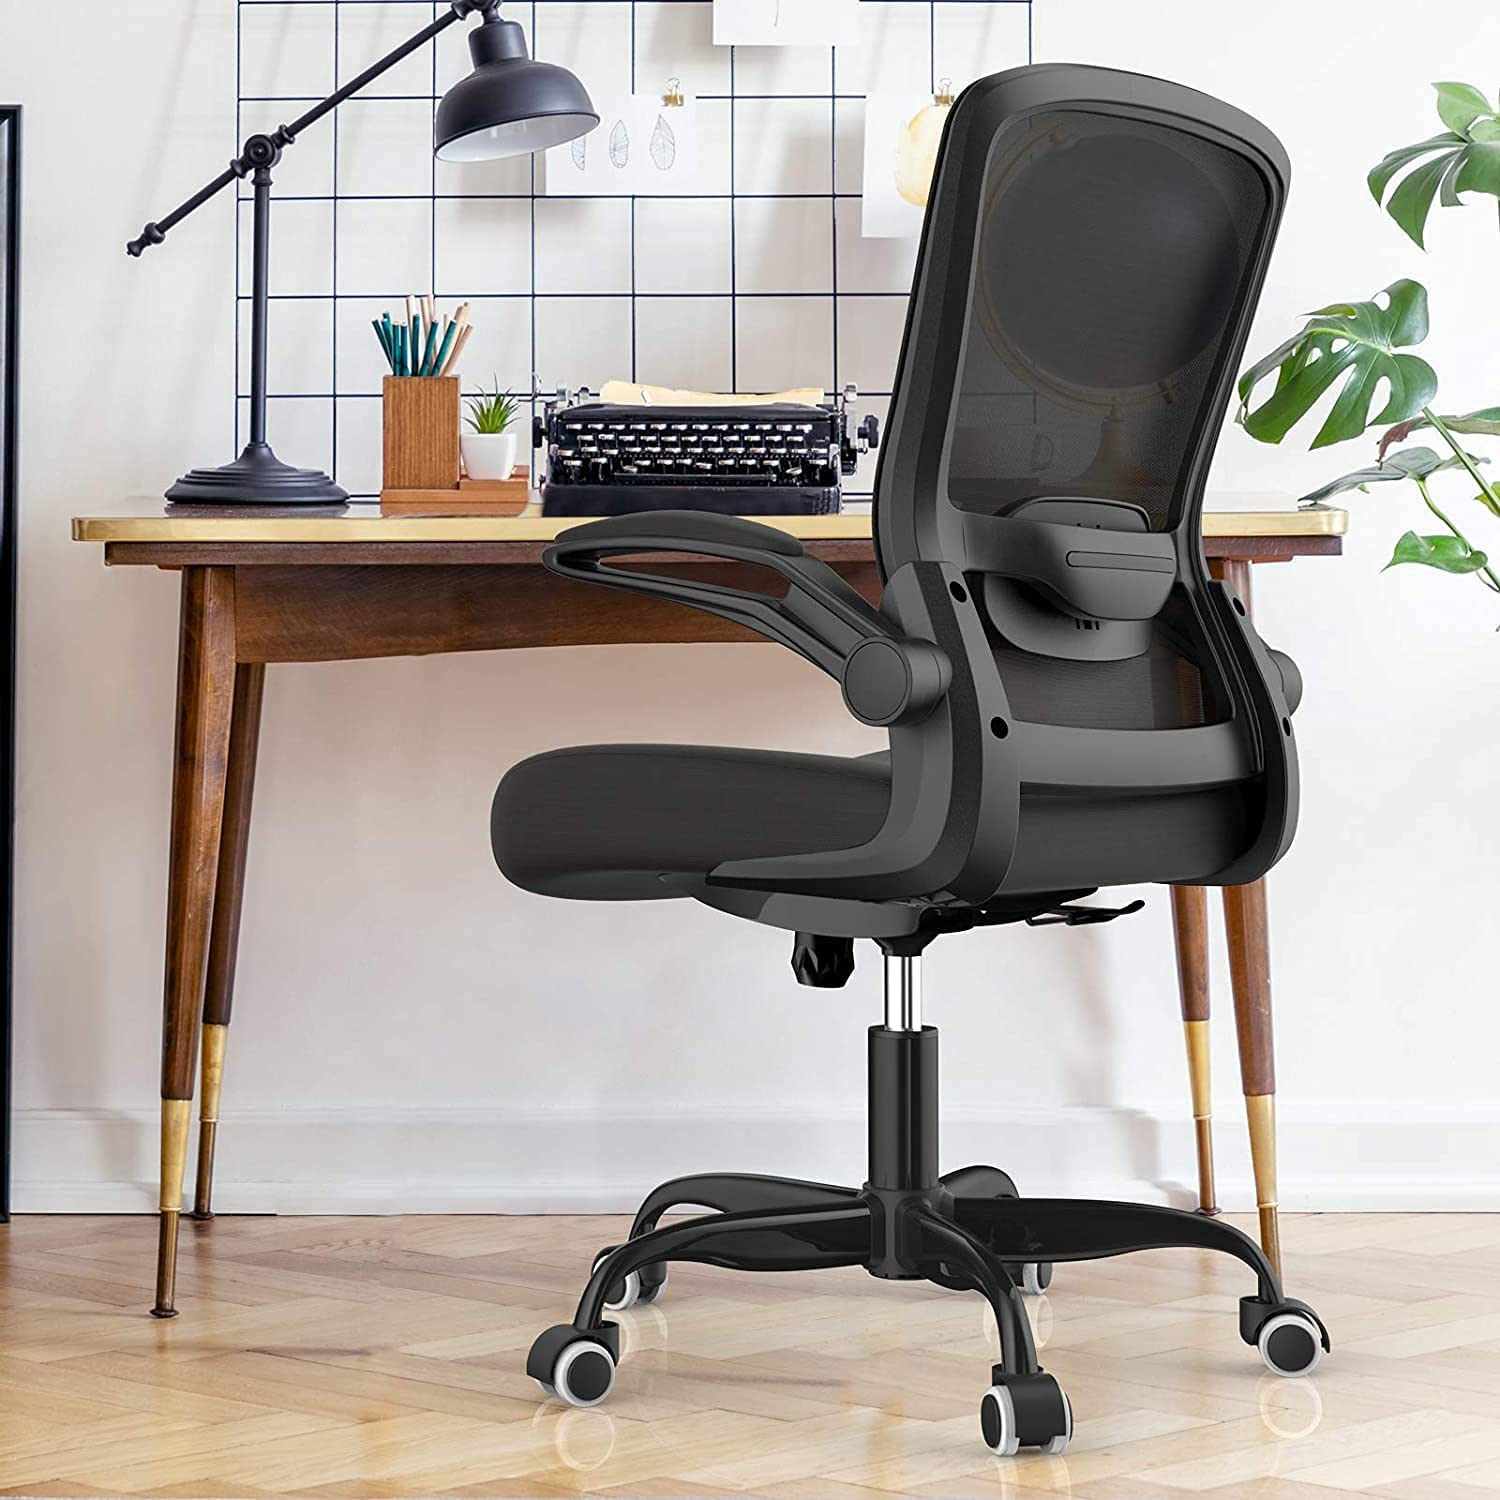 Mimoglad Office Chair, High Back Executive Computer Desk Chair - Adjustable Height and Flip-up Arms Swivel Chair Thick Padding for Comfort and Ergonomic Design for Lumbar Support…: Furniture & Decor